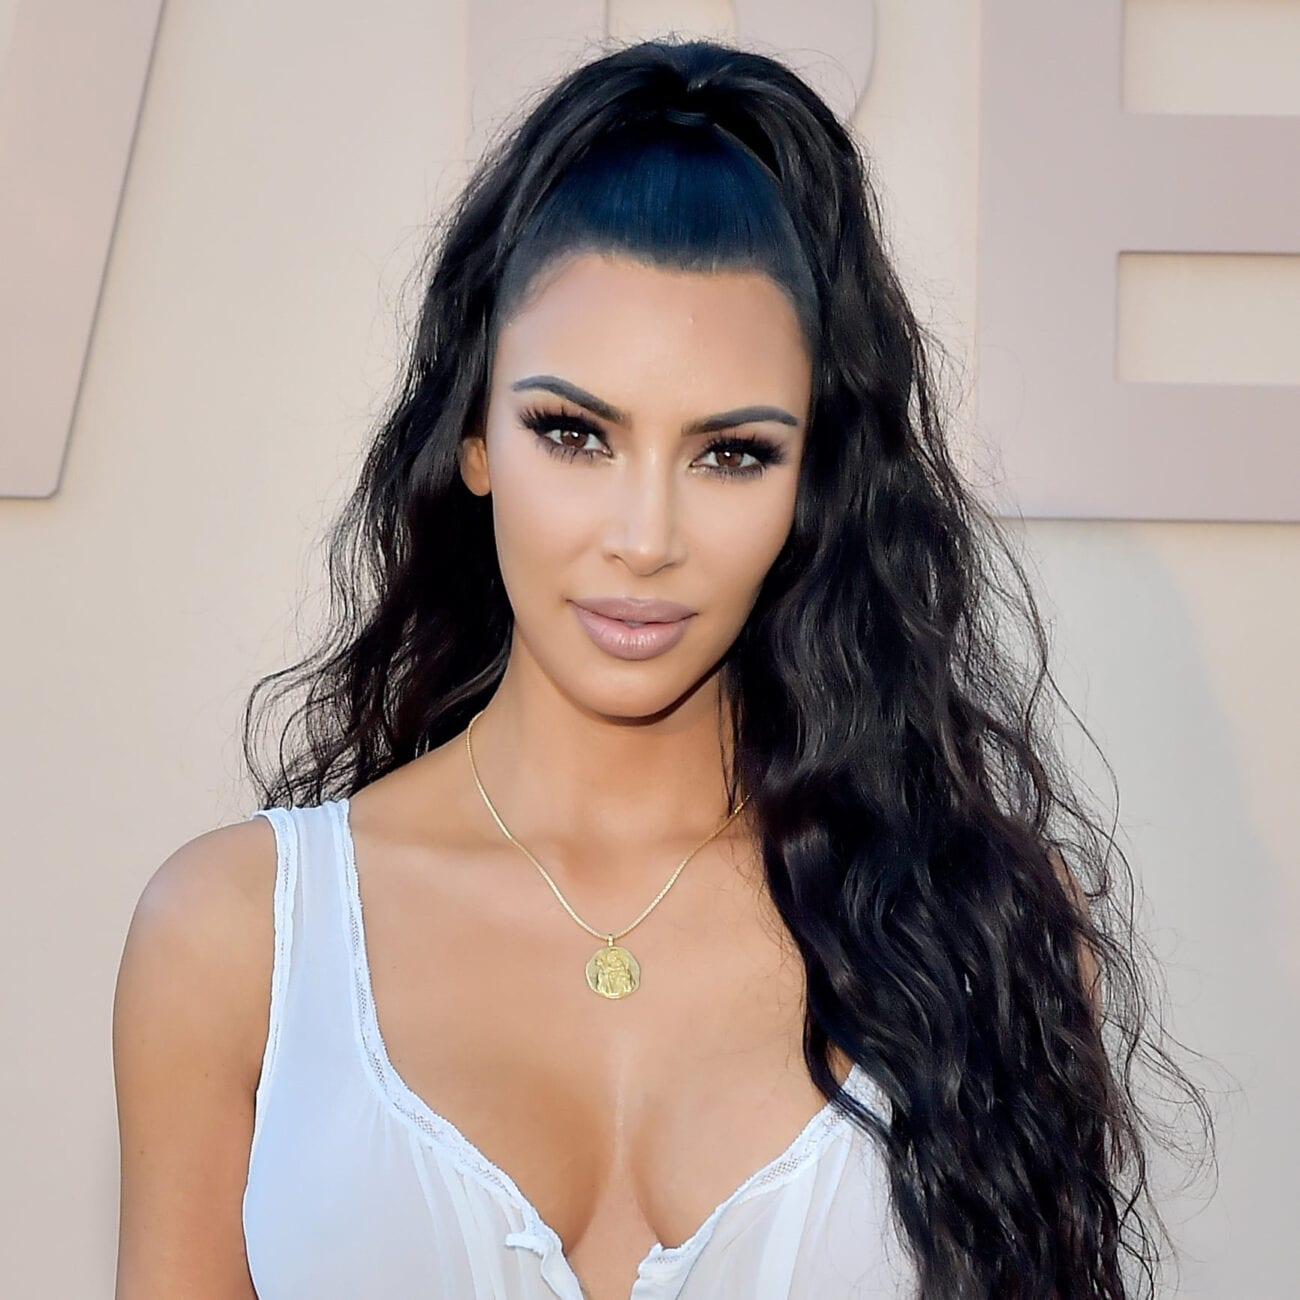 It was recently announced Kim Kardashian West has solidified a deal with Spotify for a podcast about prison reform. Here's what we know.